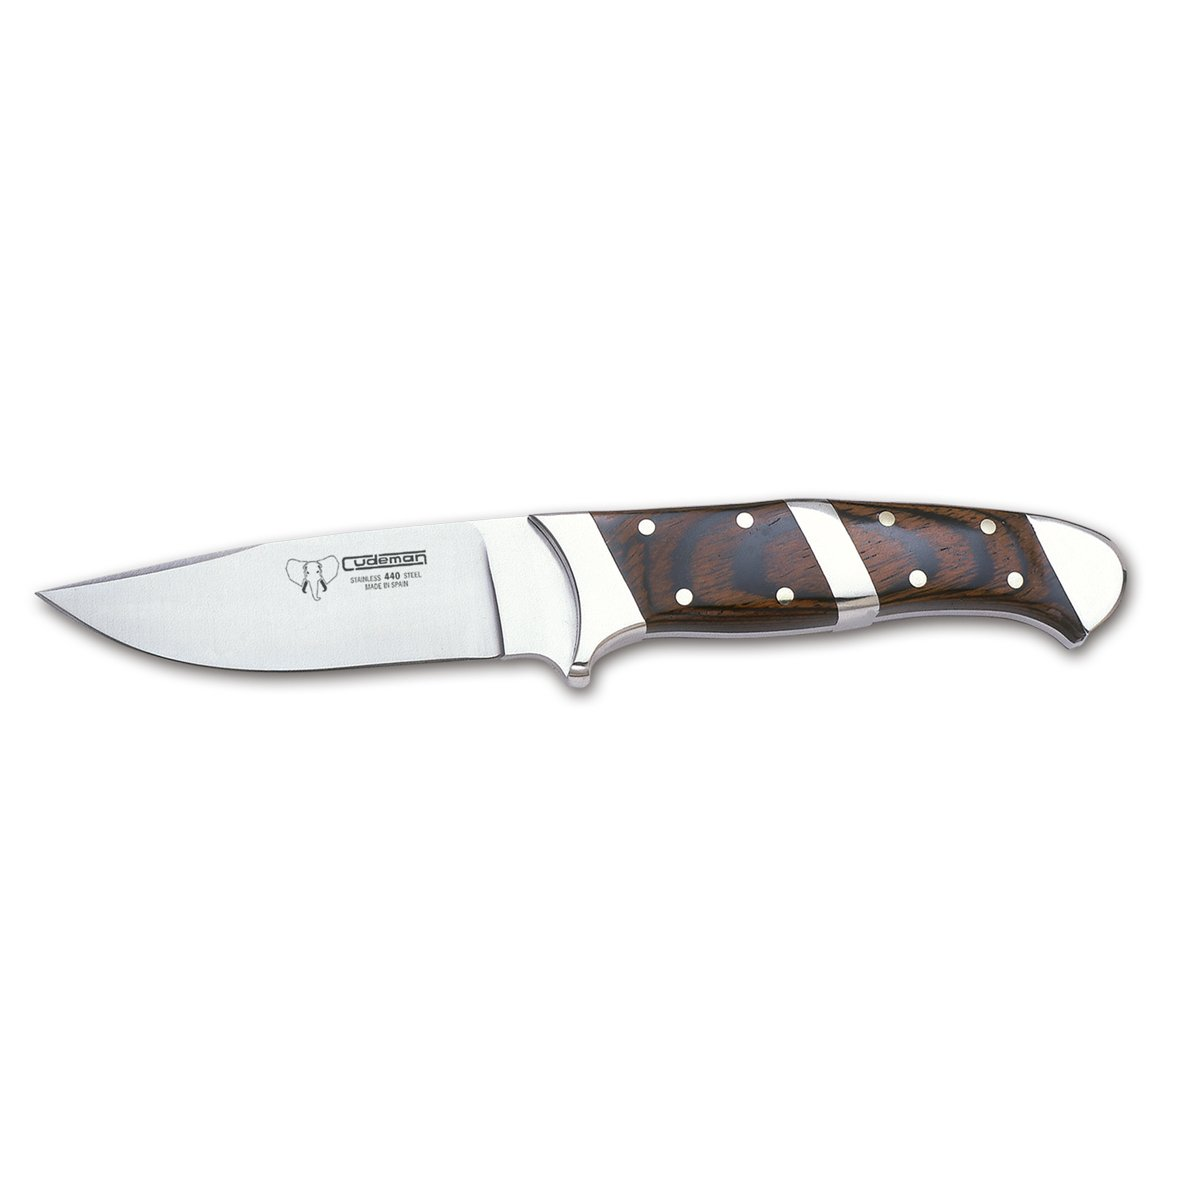 Cudeman Hunting Fixed Blade Knife 233-R with Wooden Handle of Stamina Sheet 9.5 cm with Brown Leather case. Limited Edition